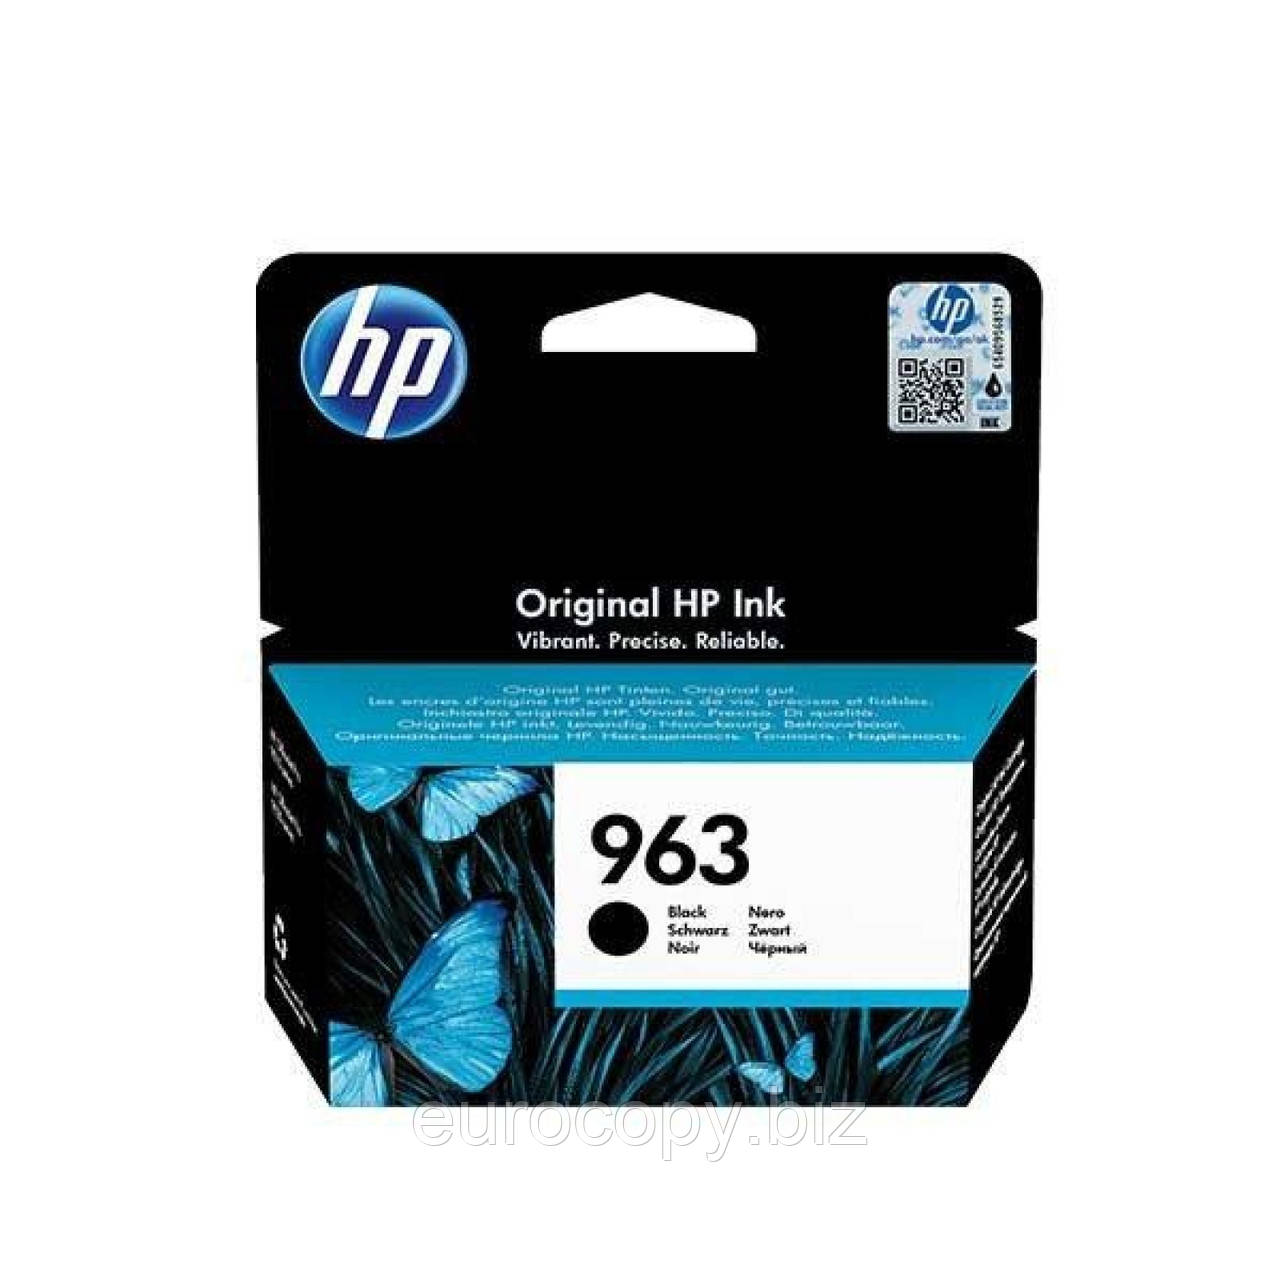 Картридж HP 963 Black Original Ink Cartridge